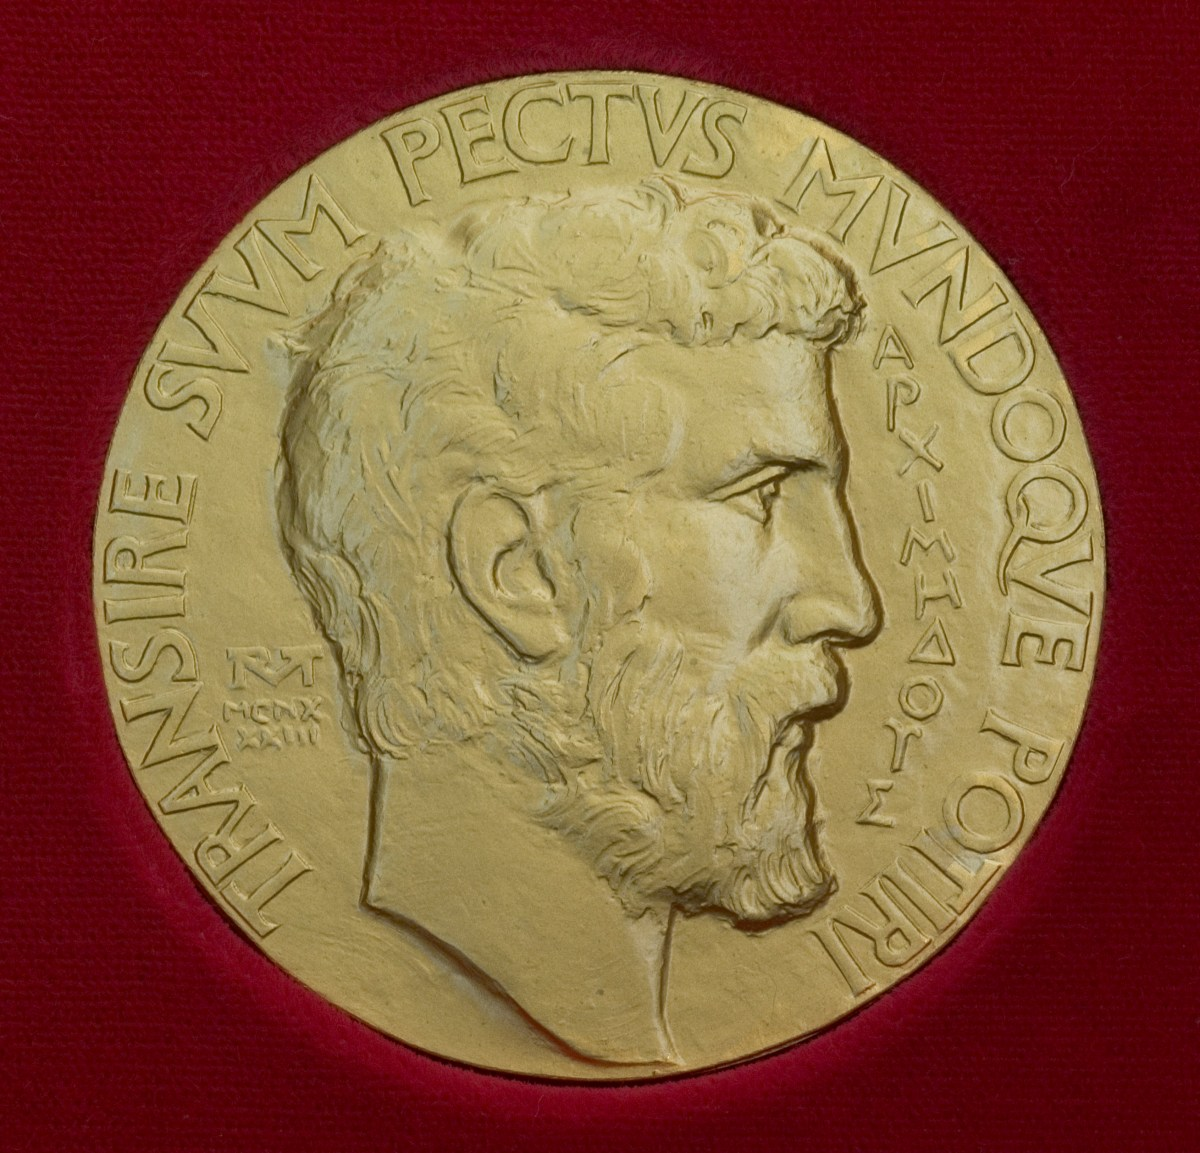 Fields Medal